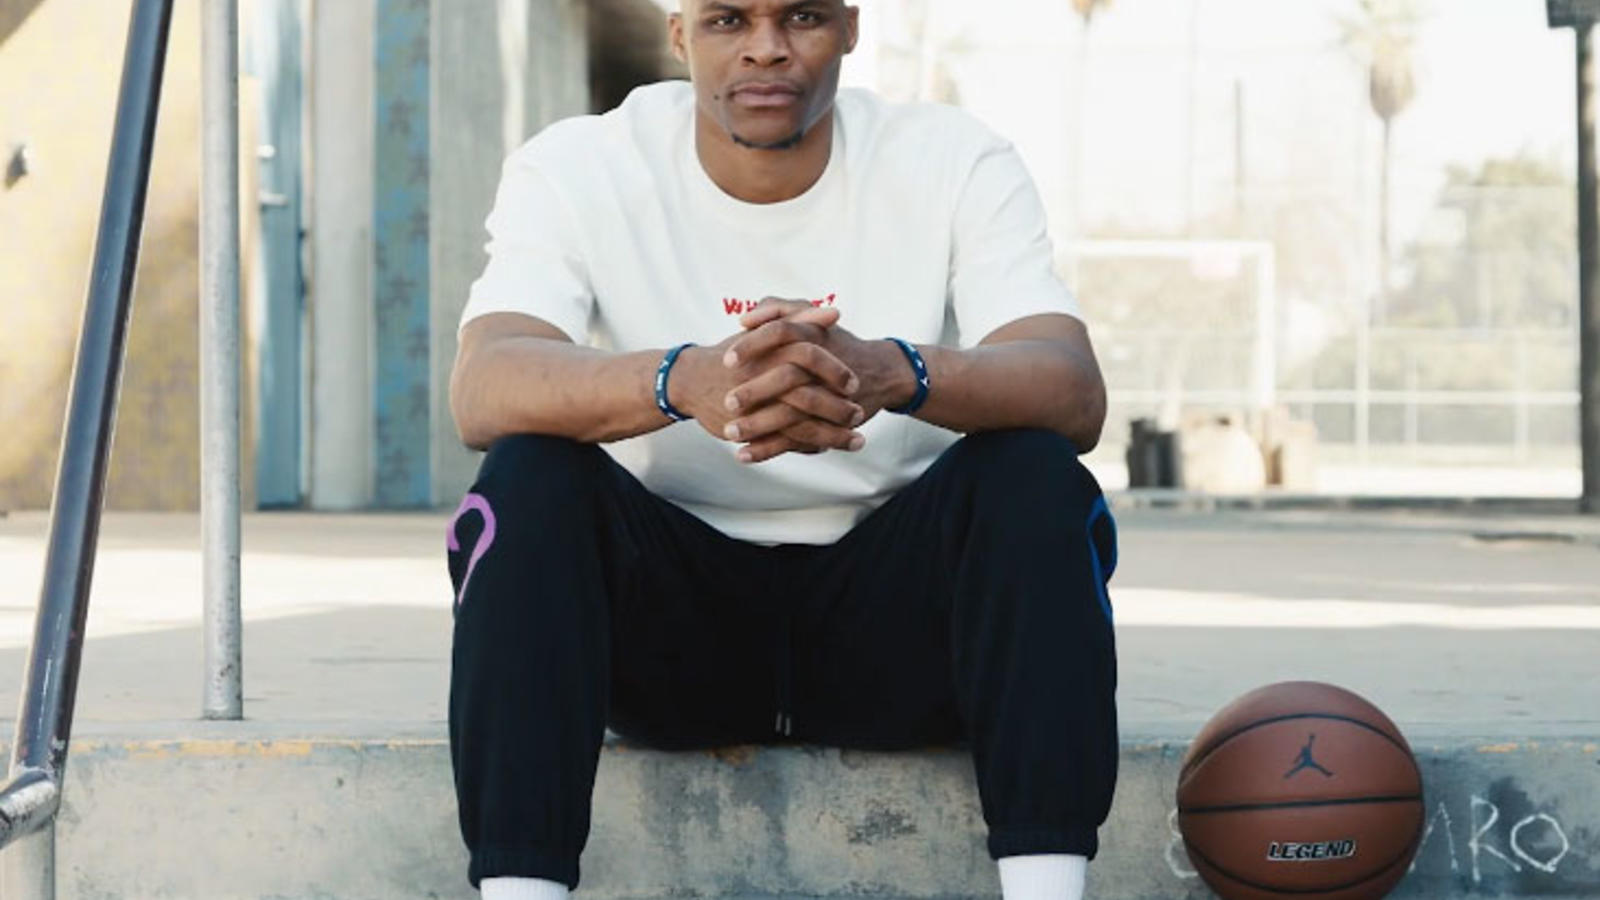 jordan-brand-presents-russell-westbrook's-why-not-message